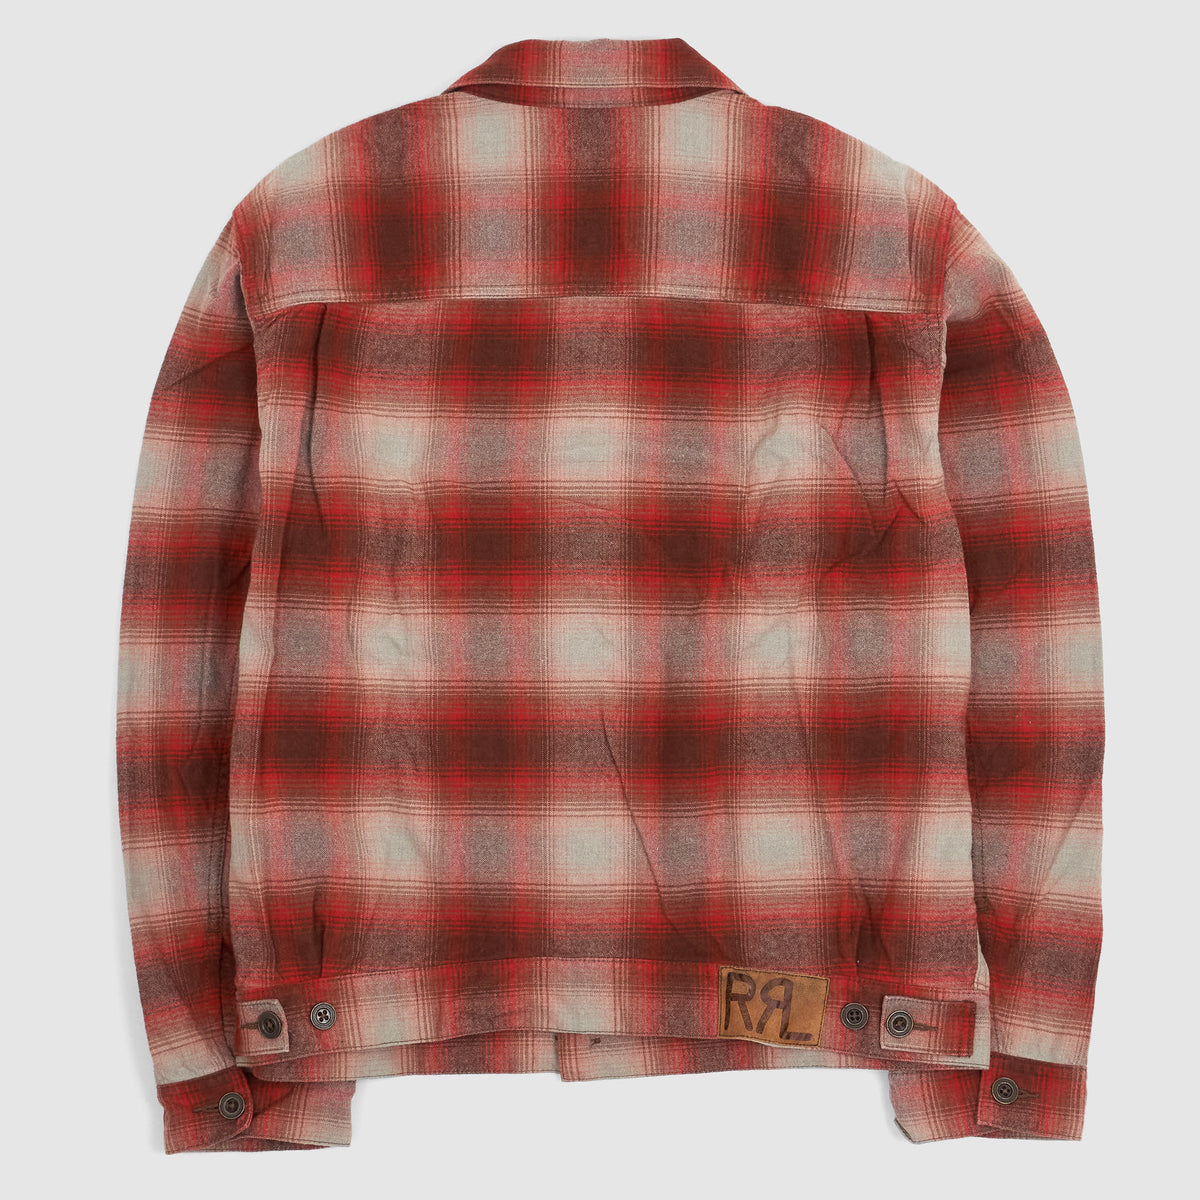 Double RL Plaid Shirt Jacket